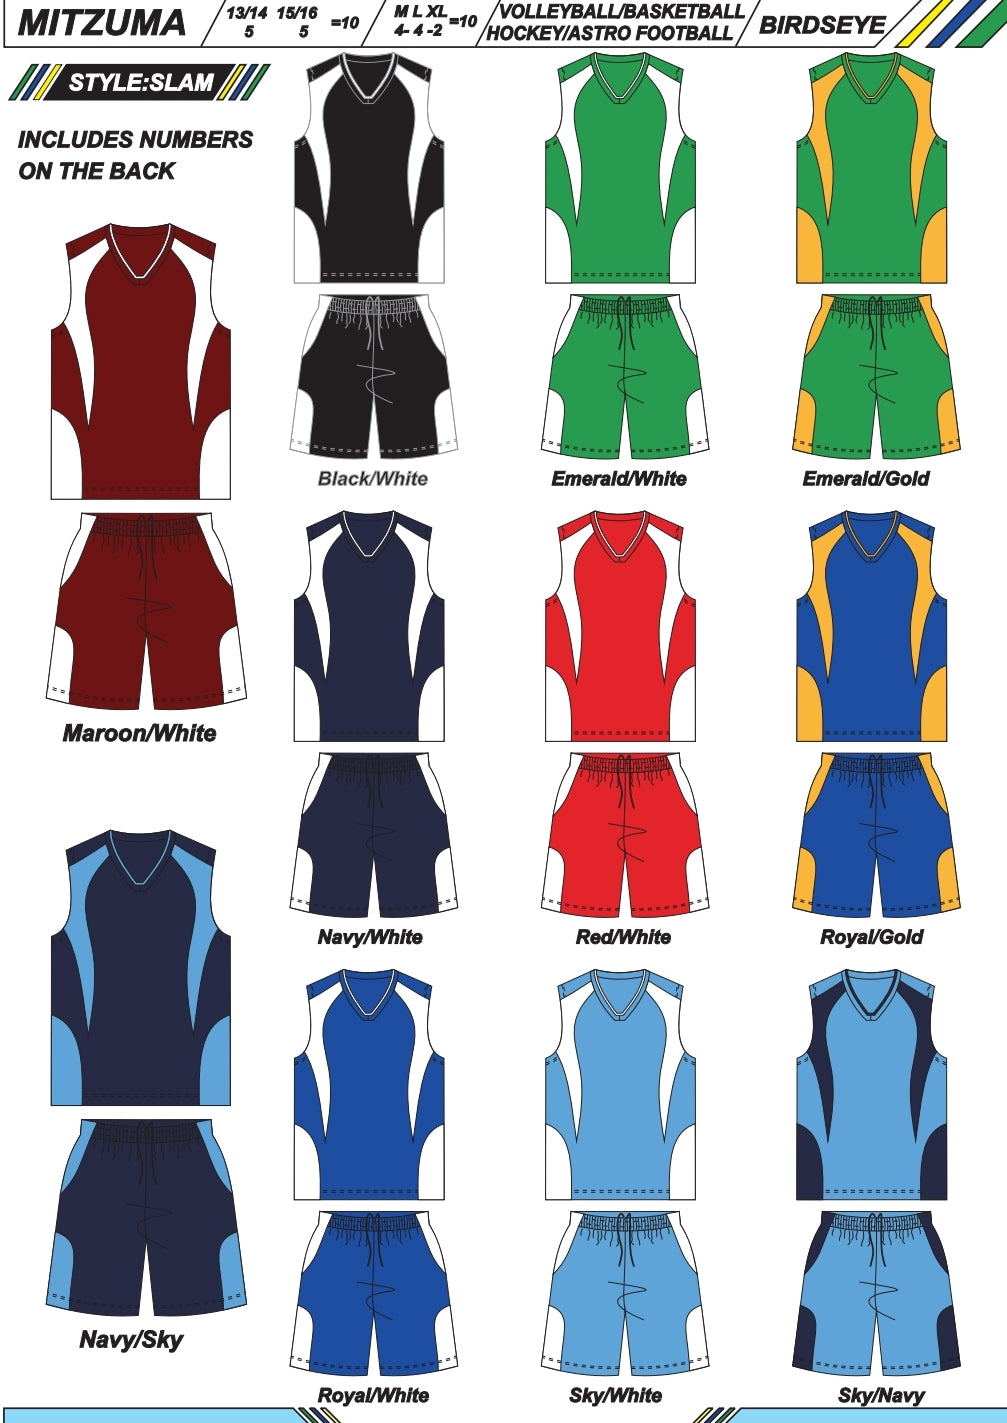 Hockey / Basketball / Volleyball / Astro Soccer Set Style Slam - gr8sportskits